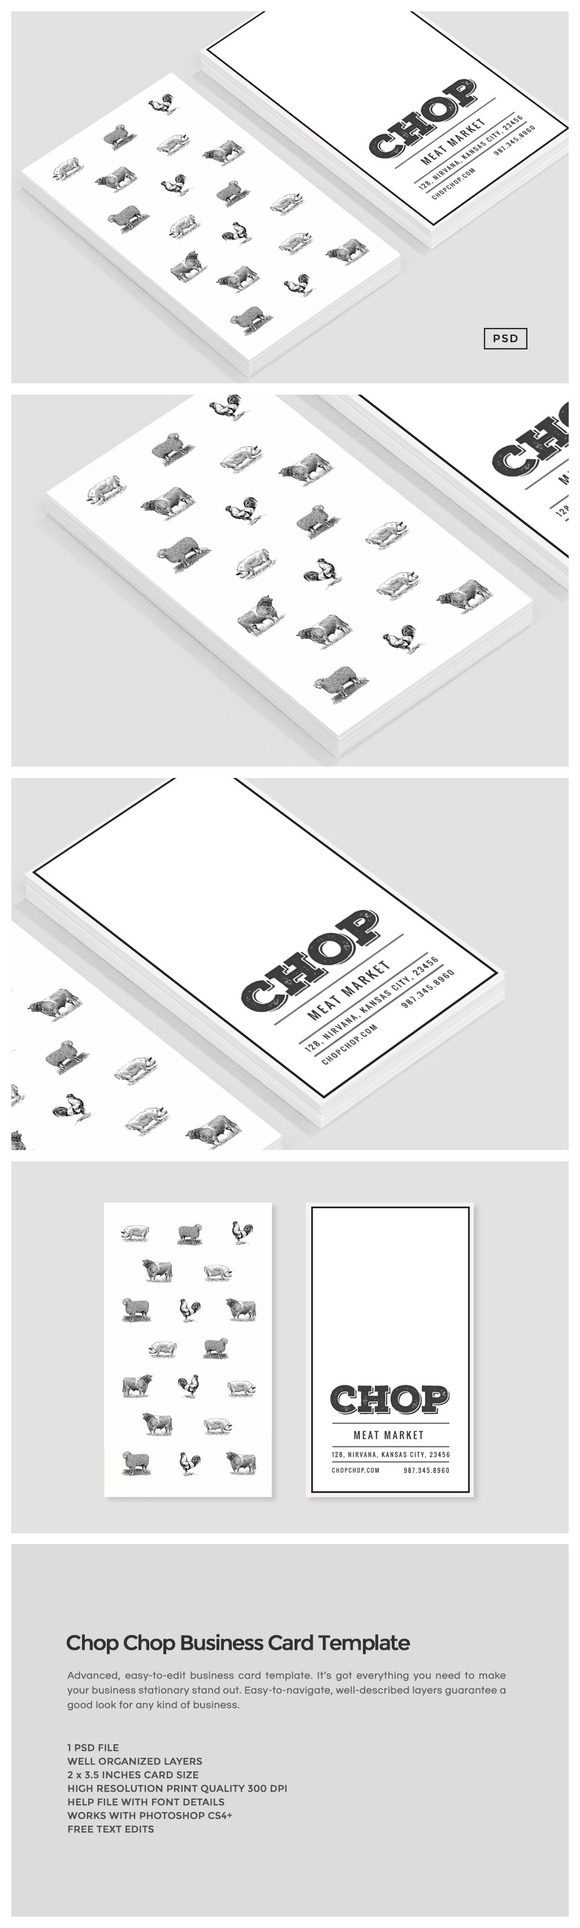 Chop chop business card template by the design label on chop chop business card template by the design label on creativemarket reheart Images